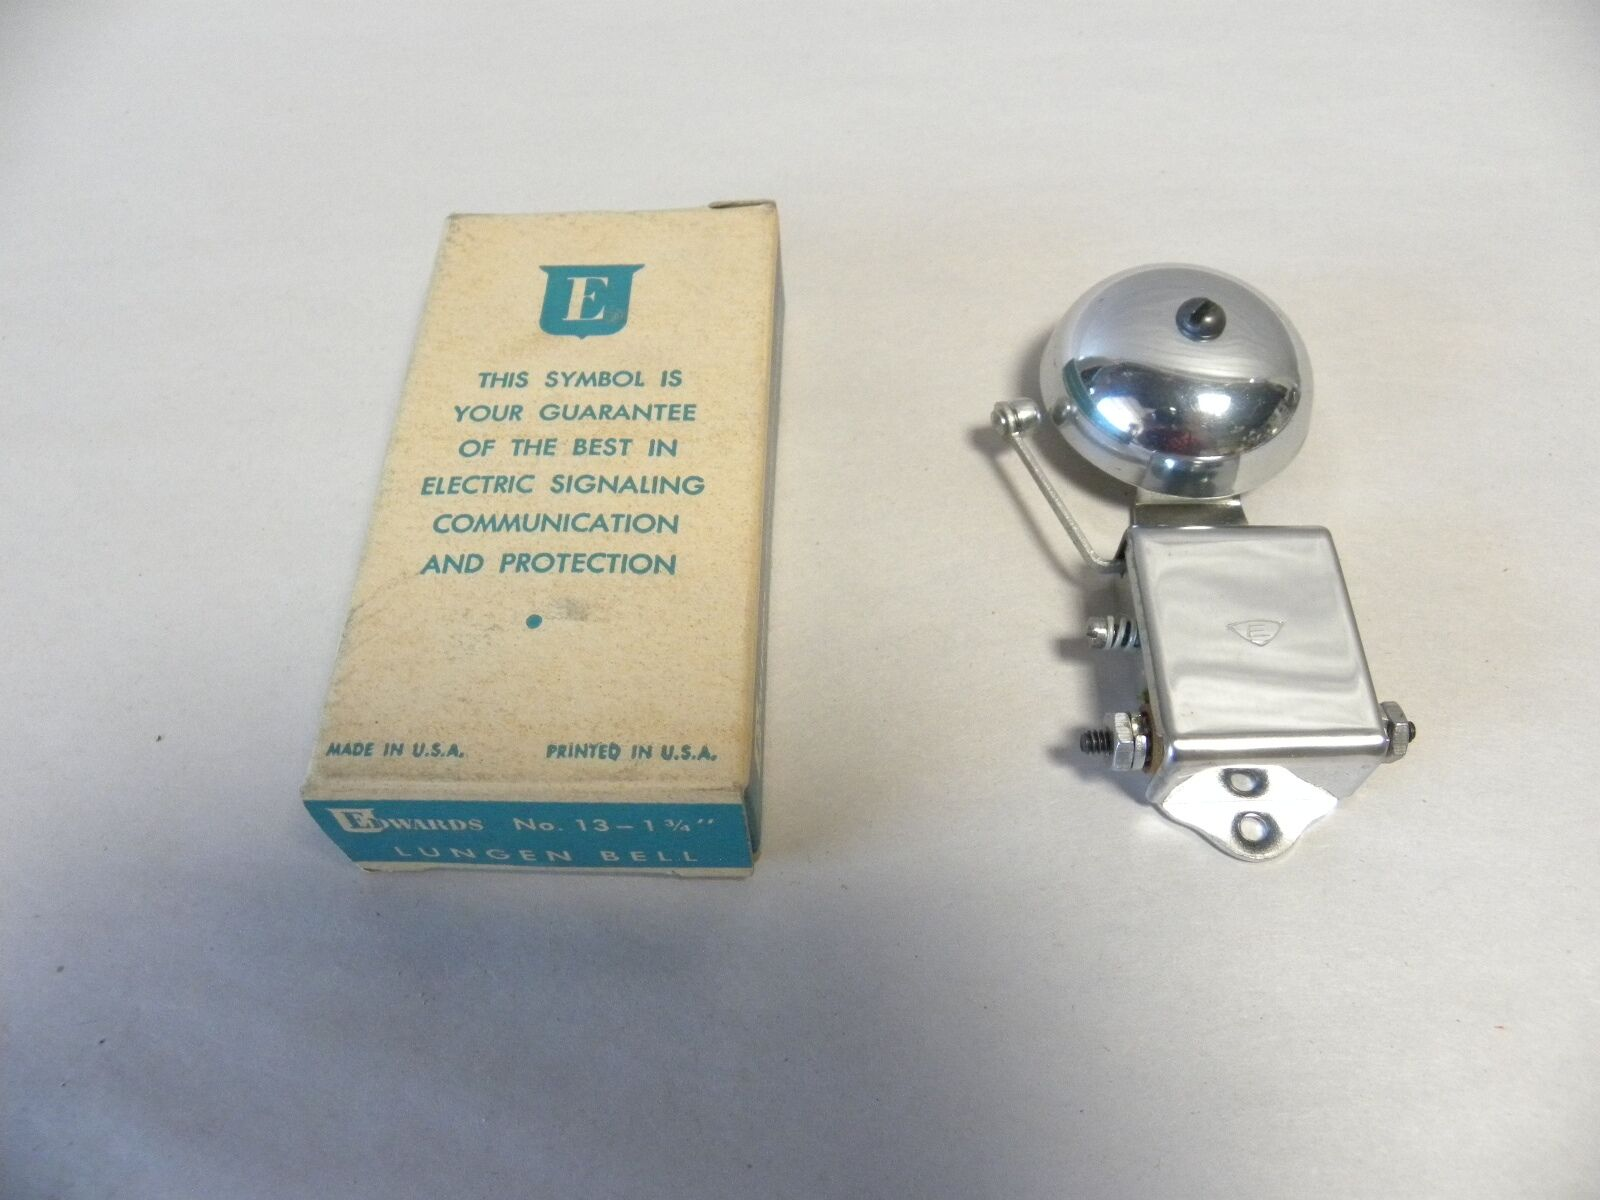 NOS Vintage Edwards Signaling Co Lungen Signal Alarm Bell 1 3/4 Inch No. 13 (A5)